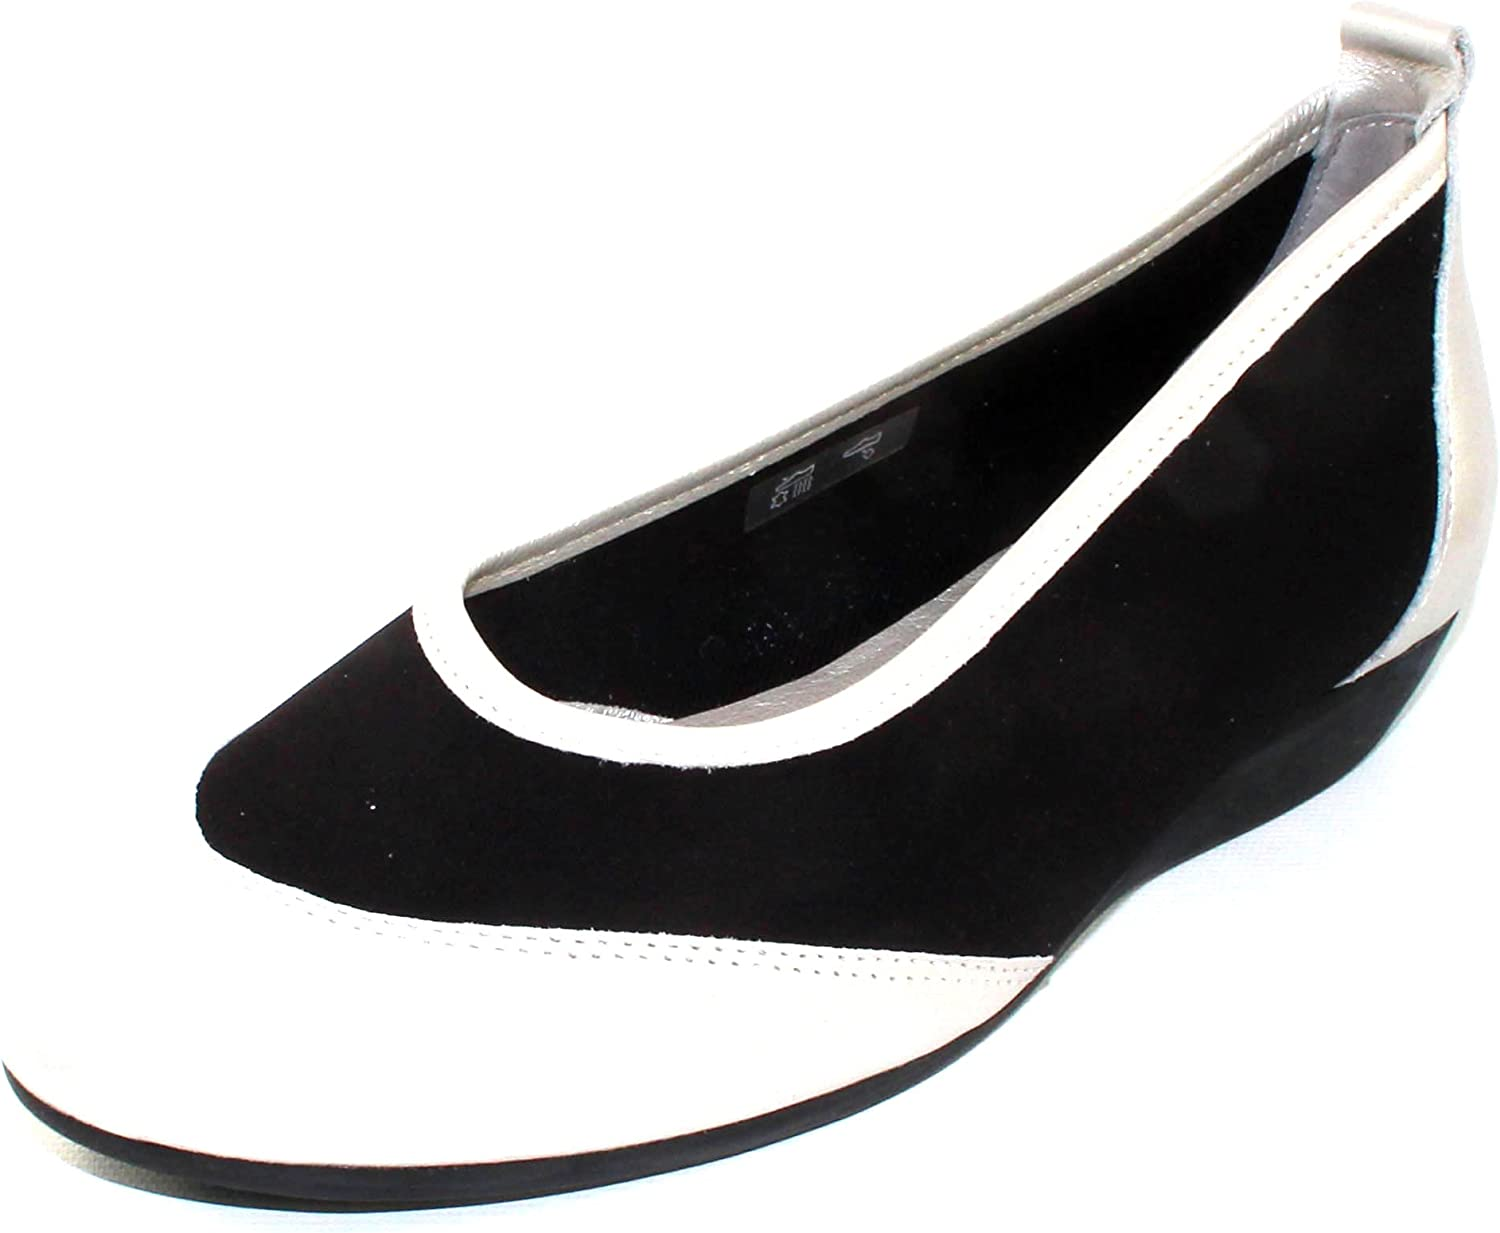 Arche Women's Oneo in silver trappeur Metal Pearlized Leather Black Stretch Microfiber - Off White - Size 38 M